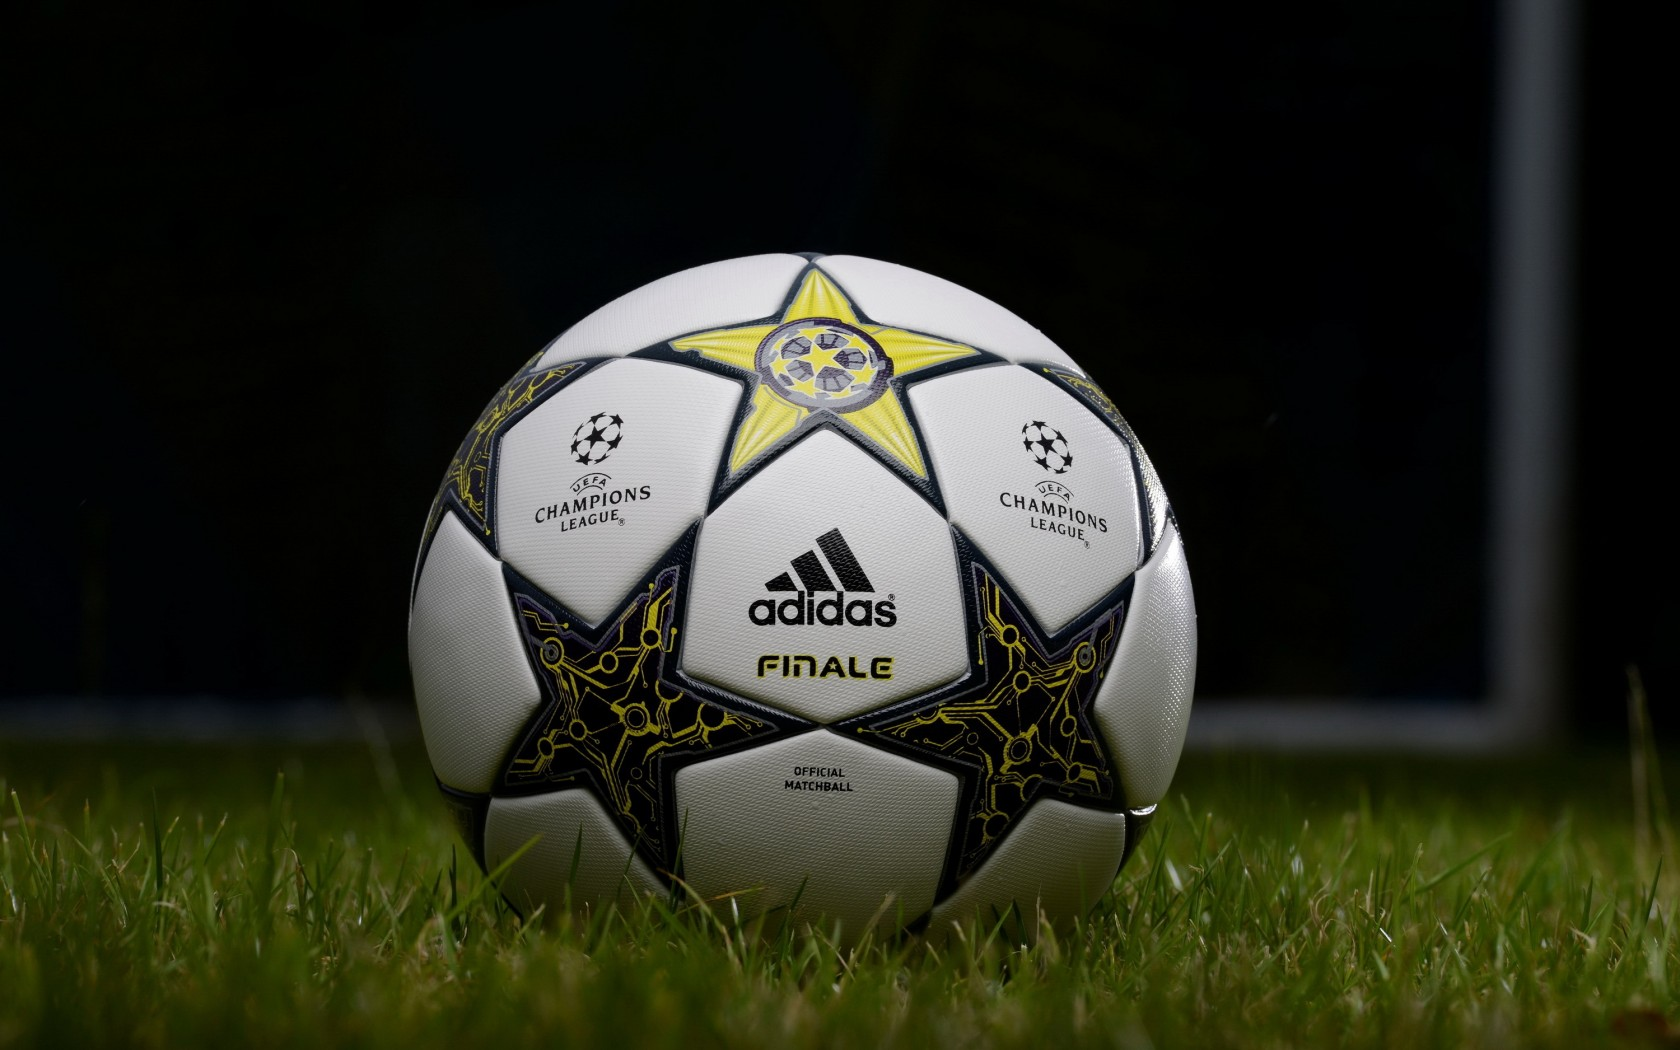 Soccer Wallpaper and Background Image | 1680x1050 | ID:460967 - Wallpaper Abyss